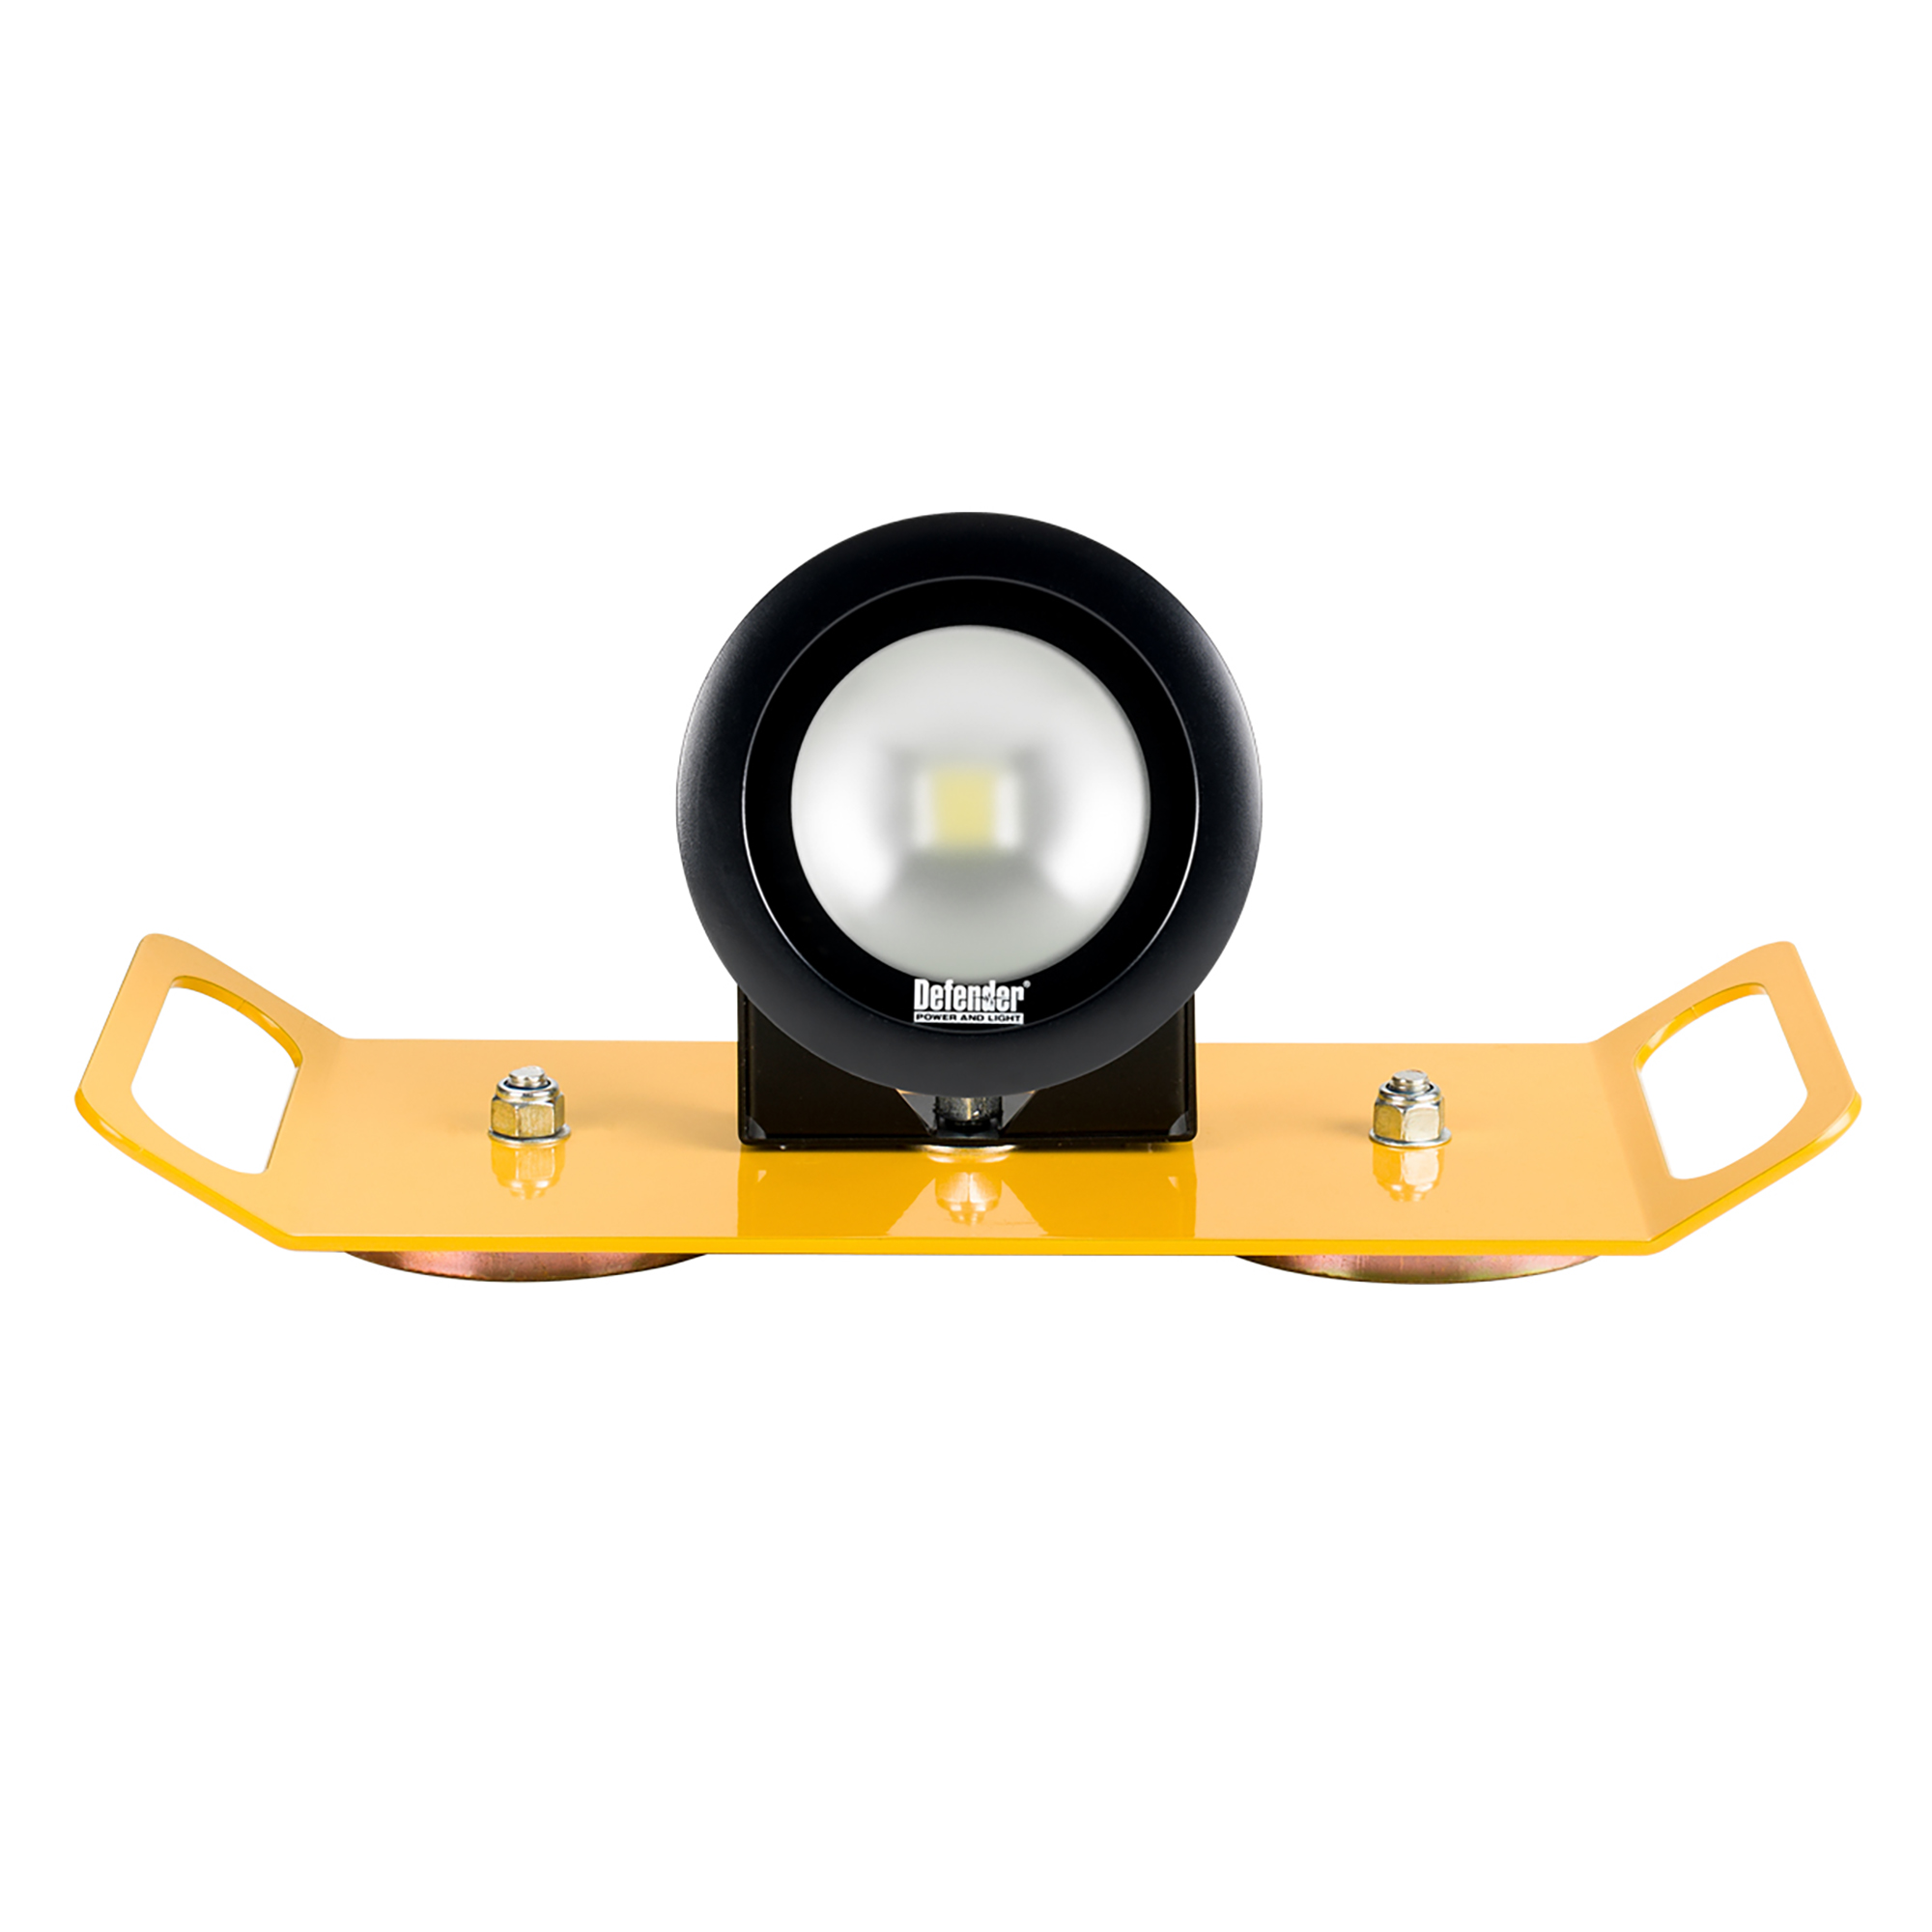 Single round Defender DF1200 LED light head mounted onto a yellow magnetic bracket